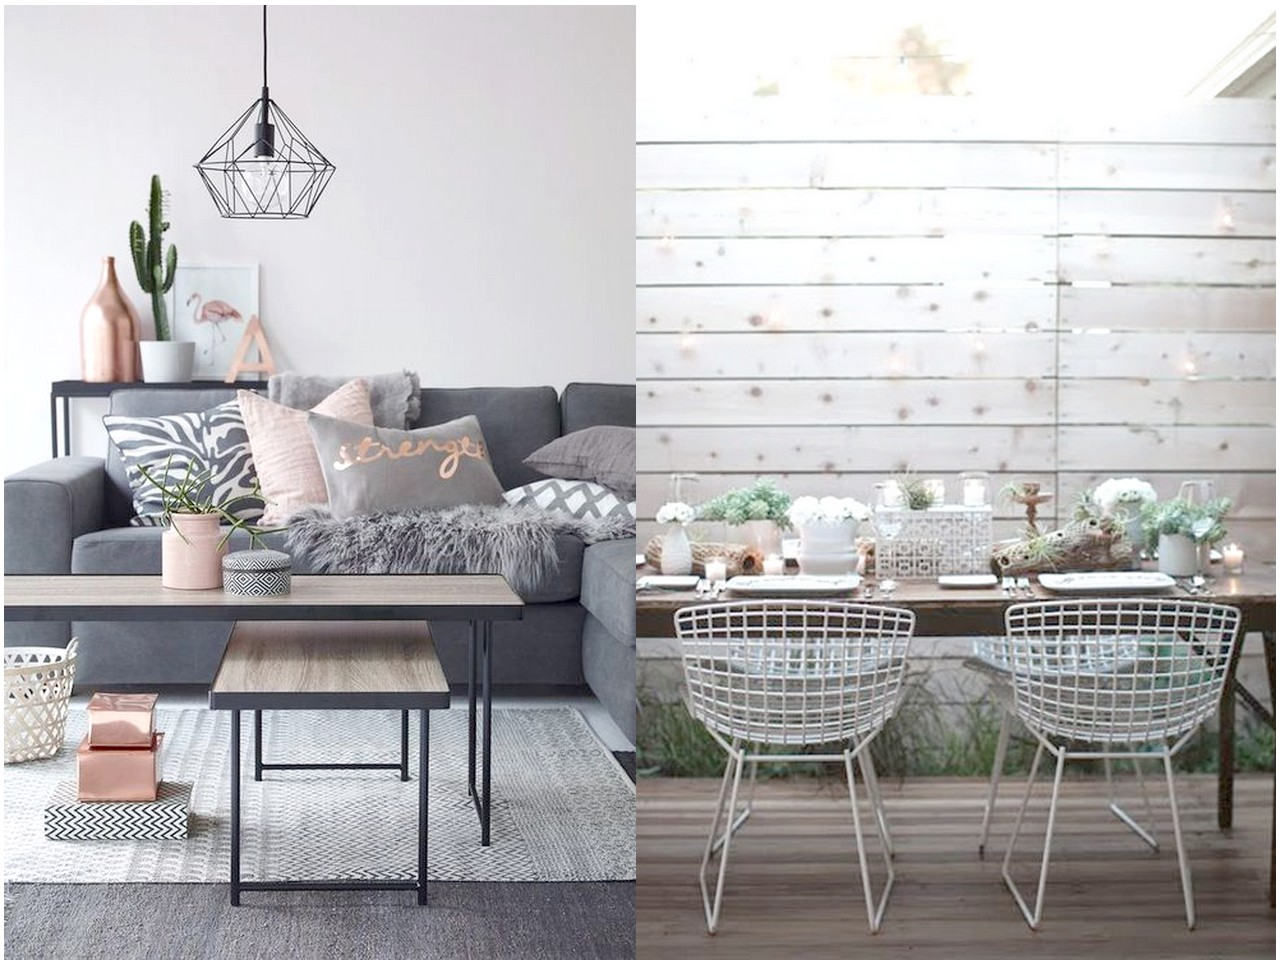 Tendencias 2016 2017 decorar con metal for Tendencias hogar 2016